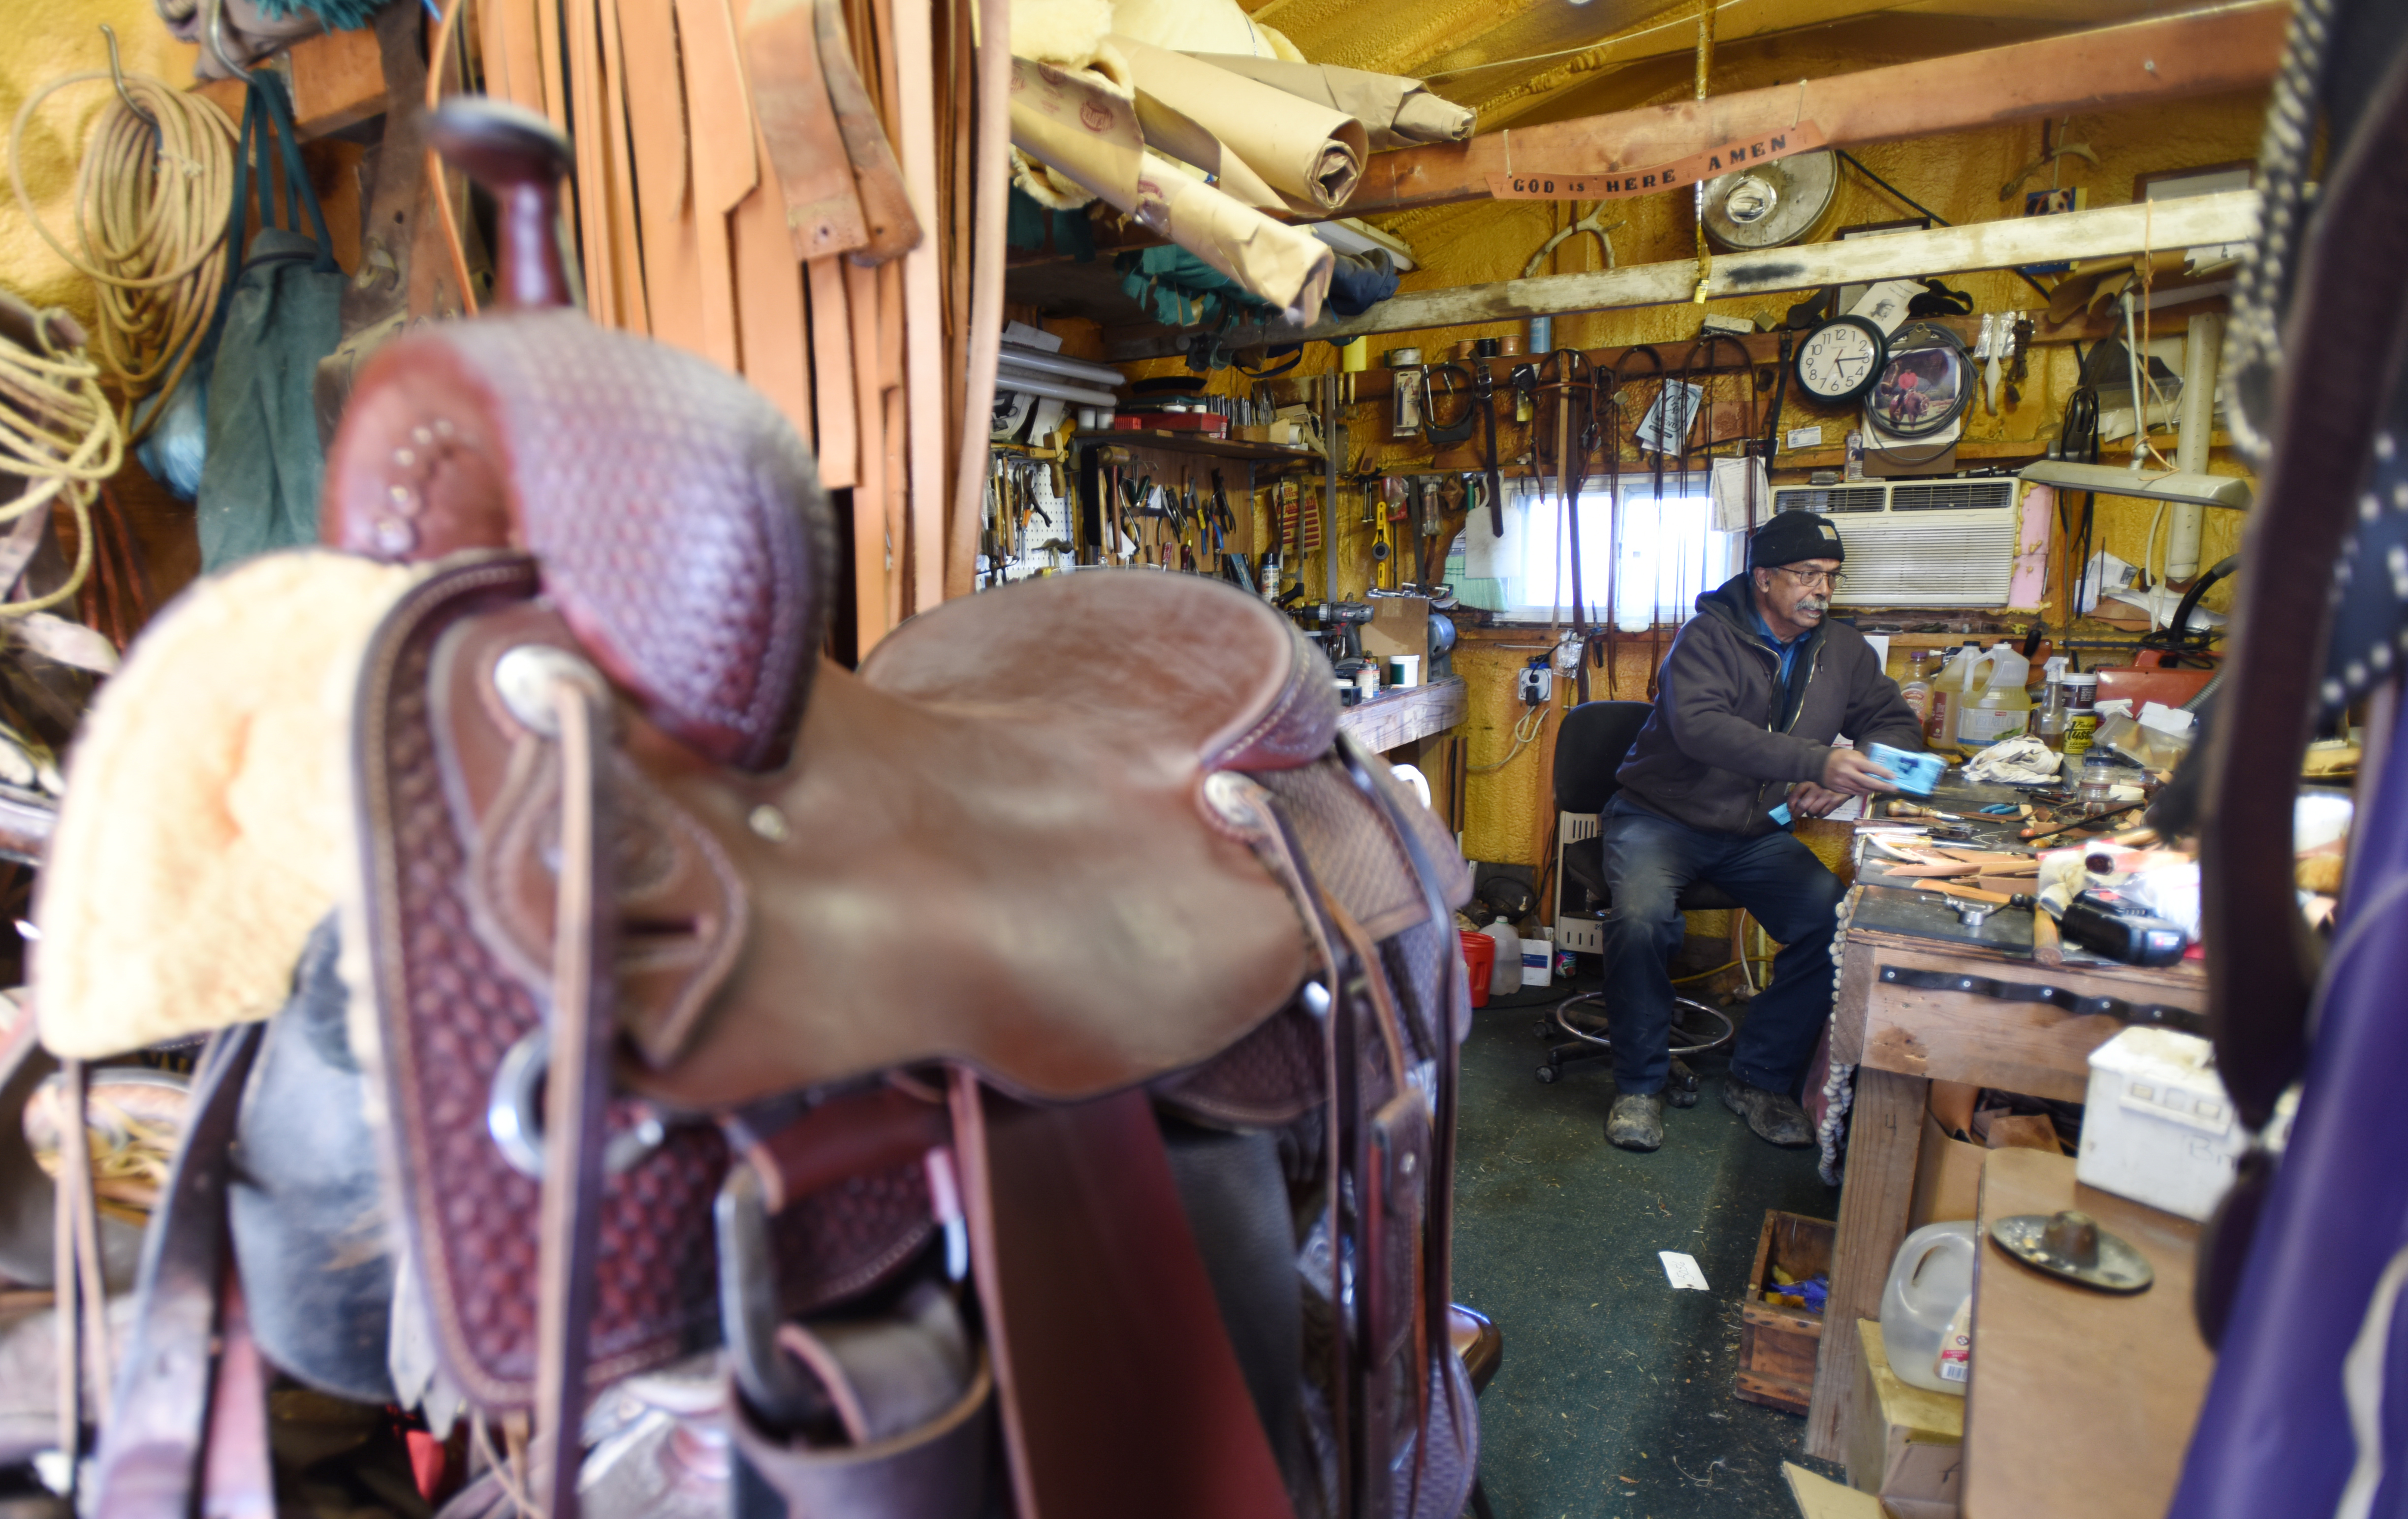 Kutztown Farmer Ray Chavous is shown working on horse saddles and reins in the leather shop at the horse barn Monday Feb. 12, 2018 in Kutztown, Pa. (Bradley C Bower/Philadelphia Inquirer)